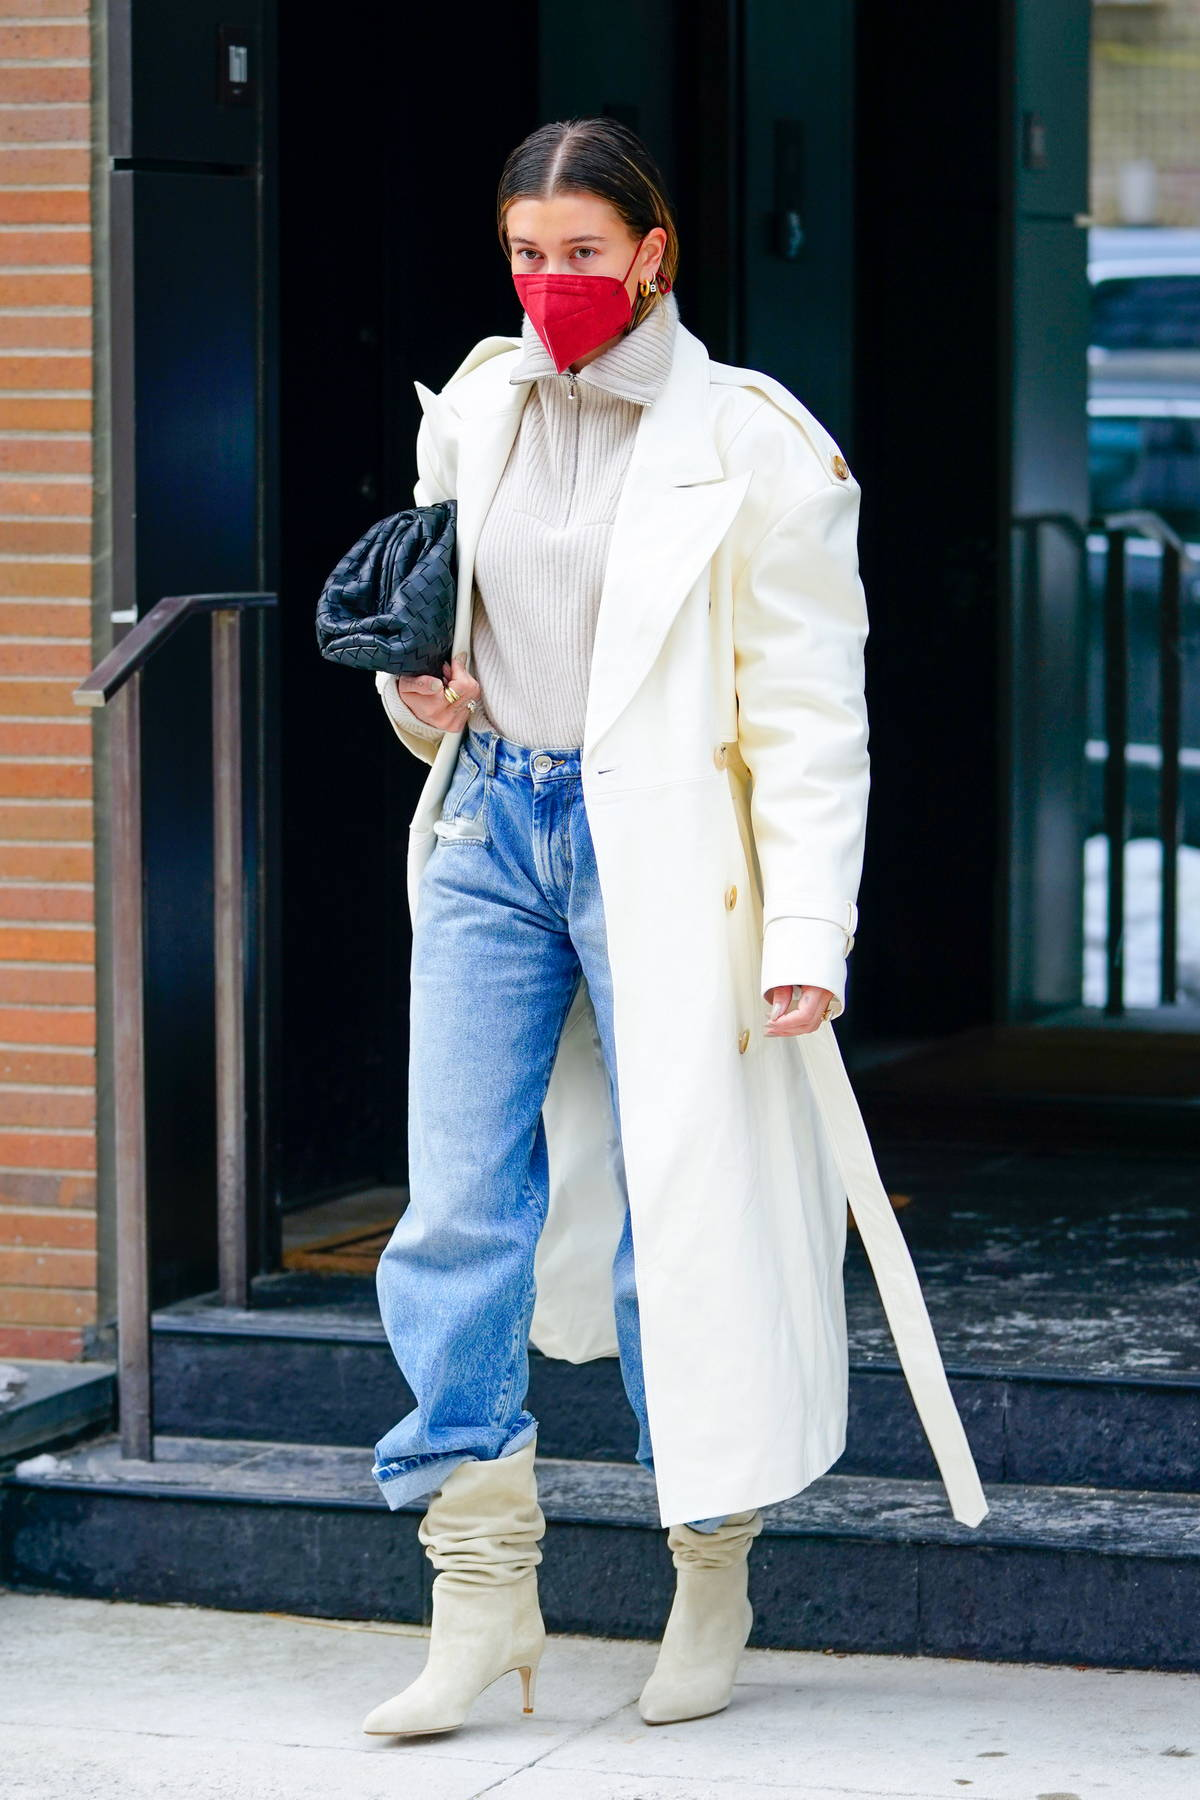 Hailey Bieber looks super chic in a white long coat paired with a cream sweater, jeans and boots as she heads out in Brooklyn, New York